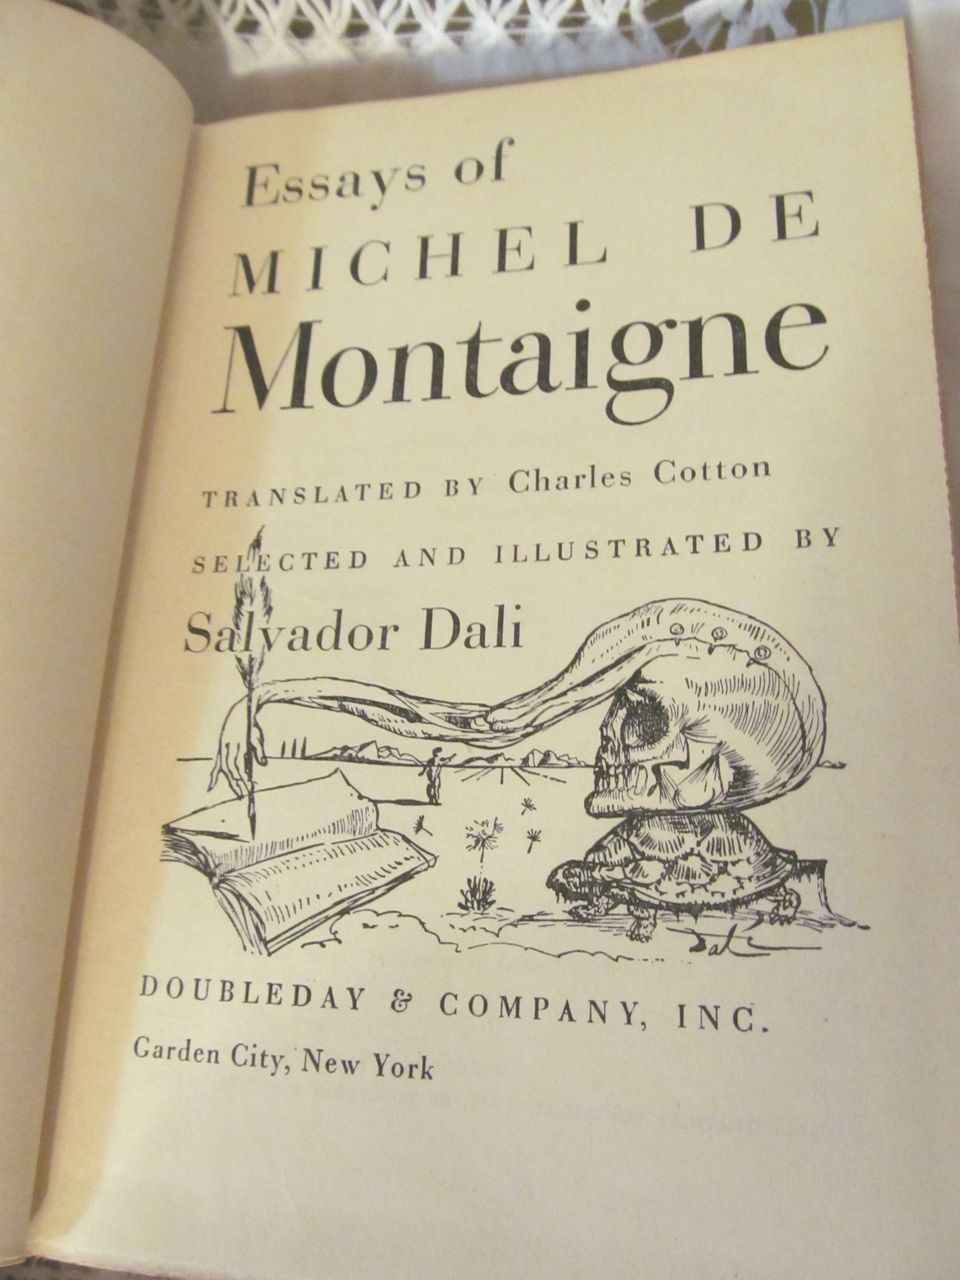 essays of michael de montaigne illustrated by salvador dali